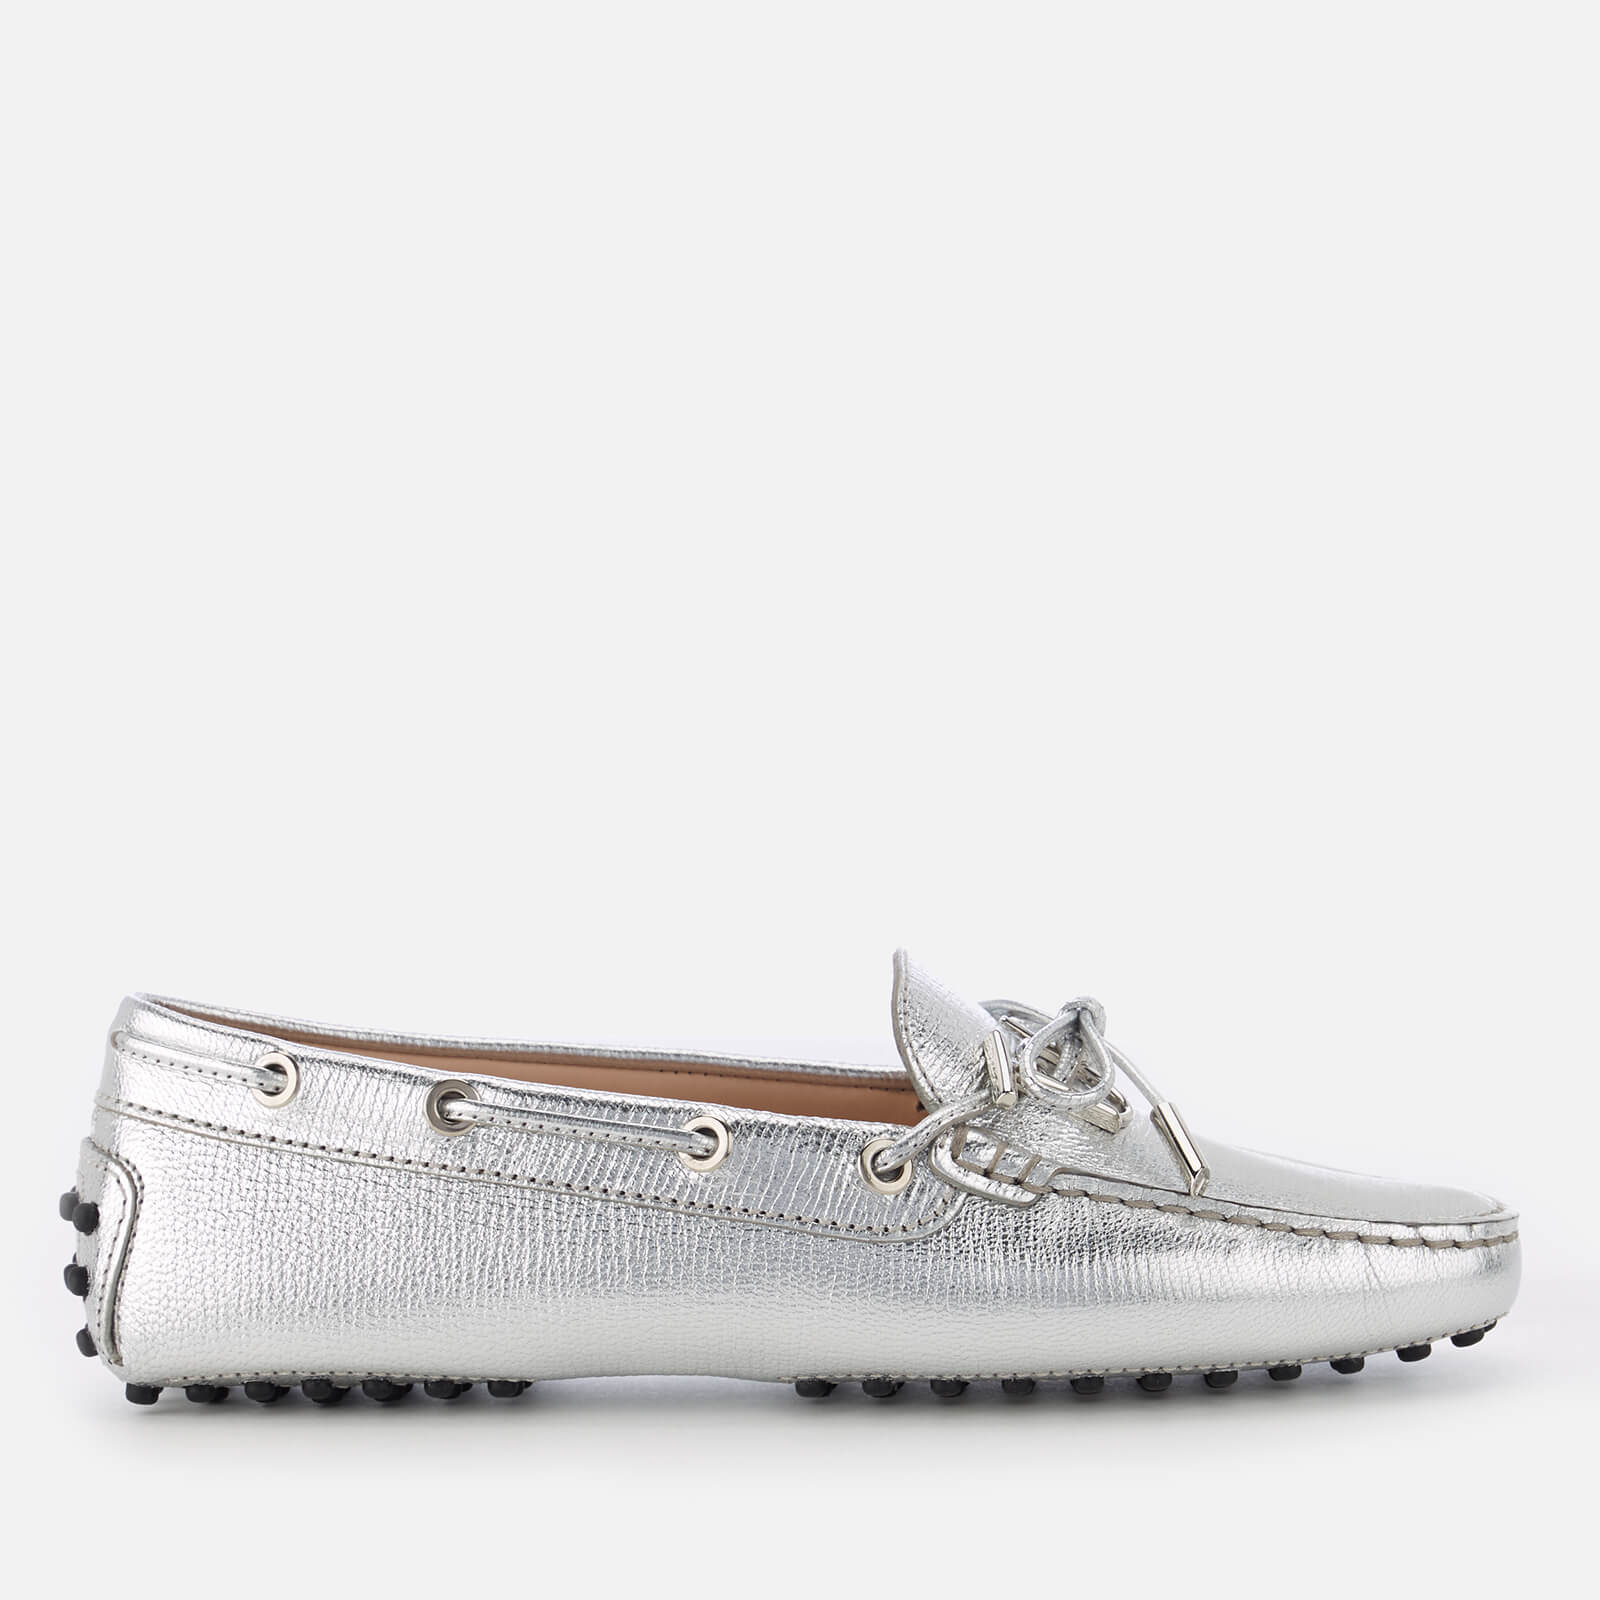 a773182dce Tod's Women's Leather Driving Shoes - Silver - Free UK Delivery over £50